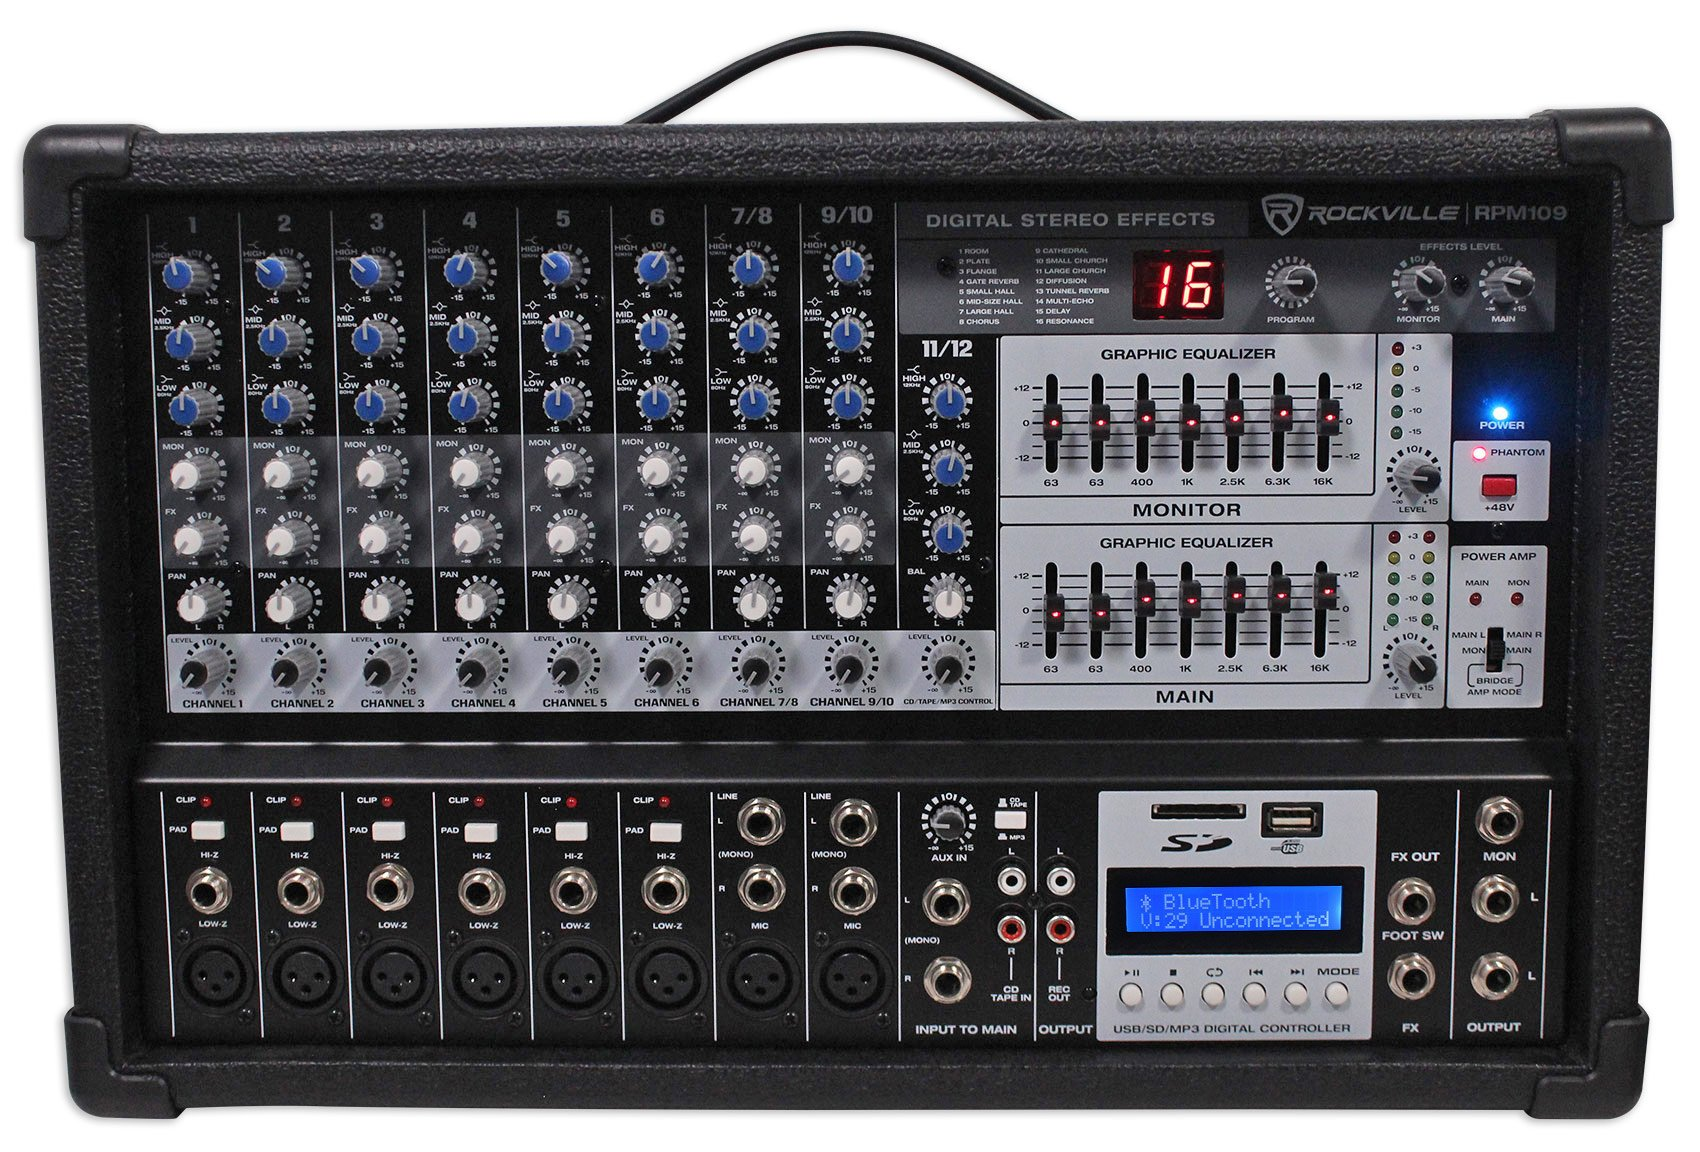 Rockville RPM109 12 Channel 4800w Powered Mixer, 7 Band EQ, Effects, USB, 48V by Rockville